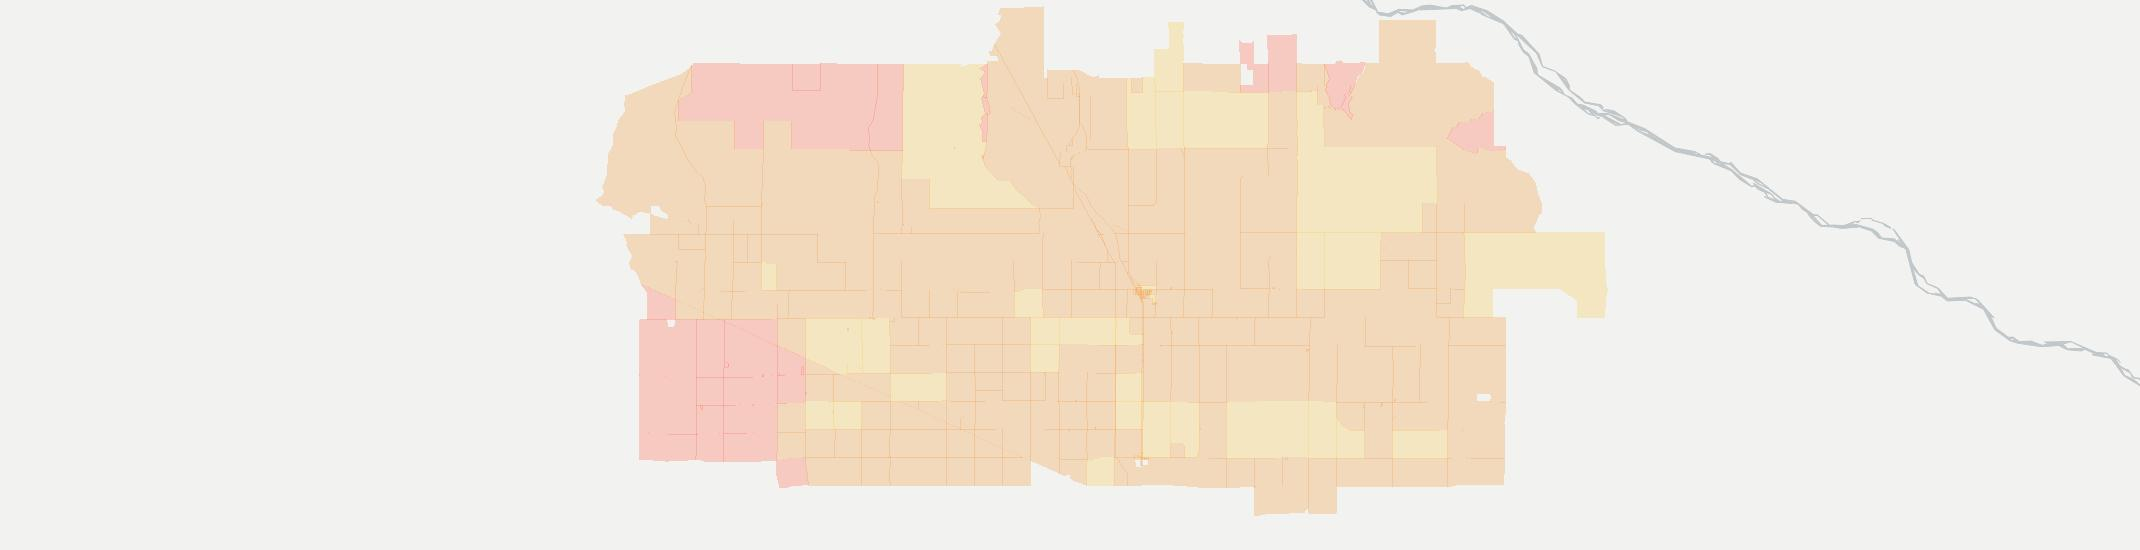 Dalton Internet Competition Map. Click for interactive map.